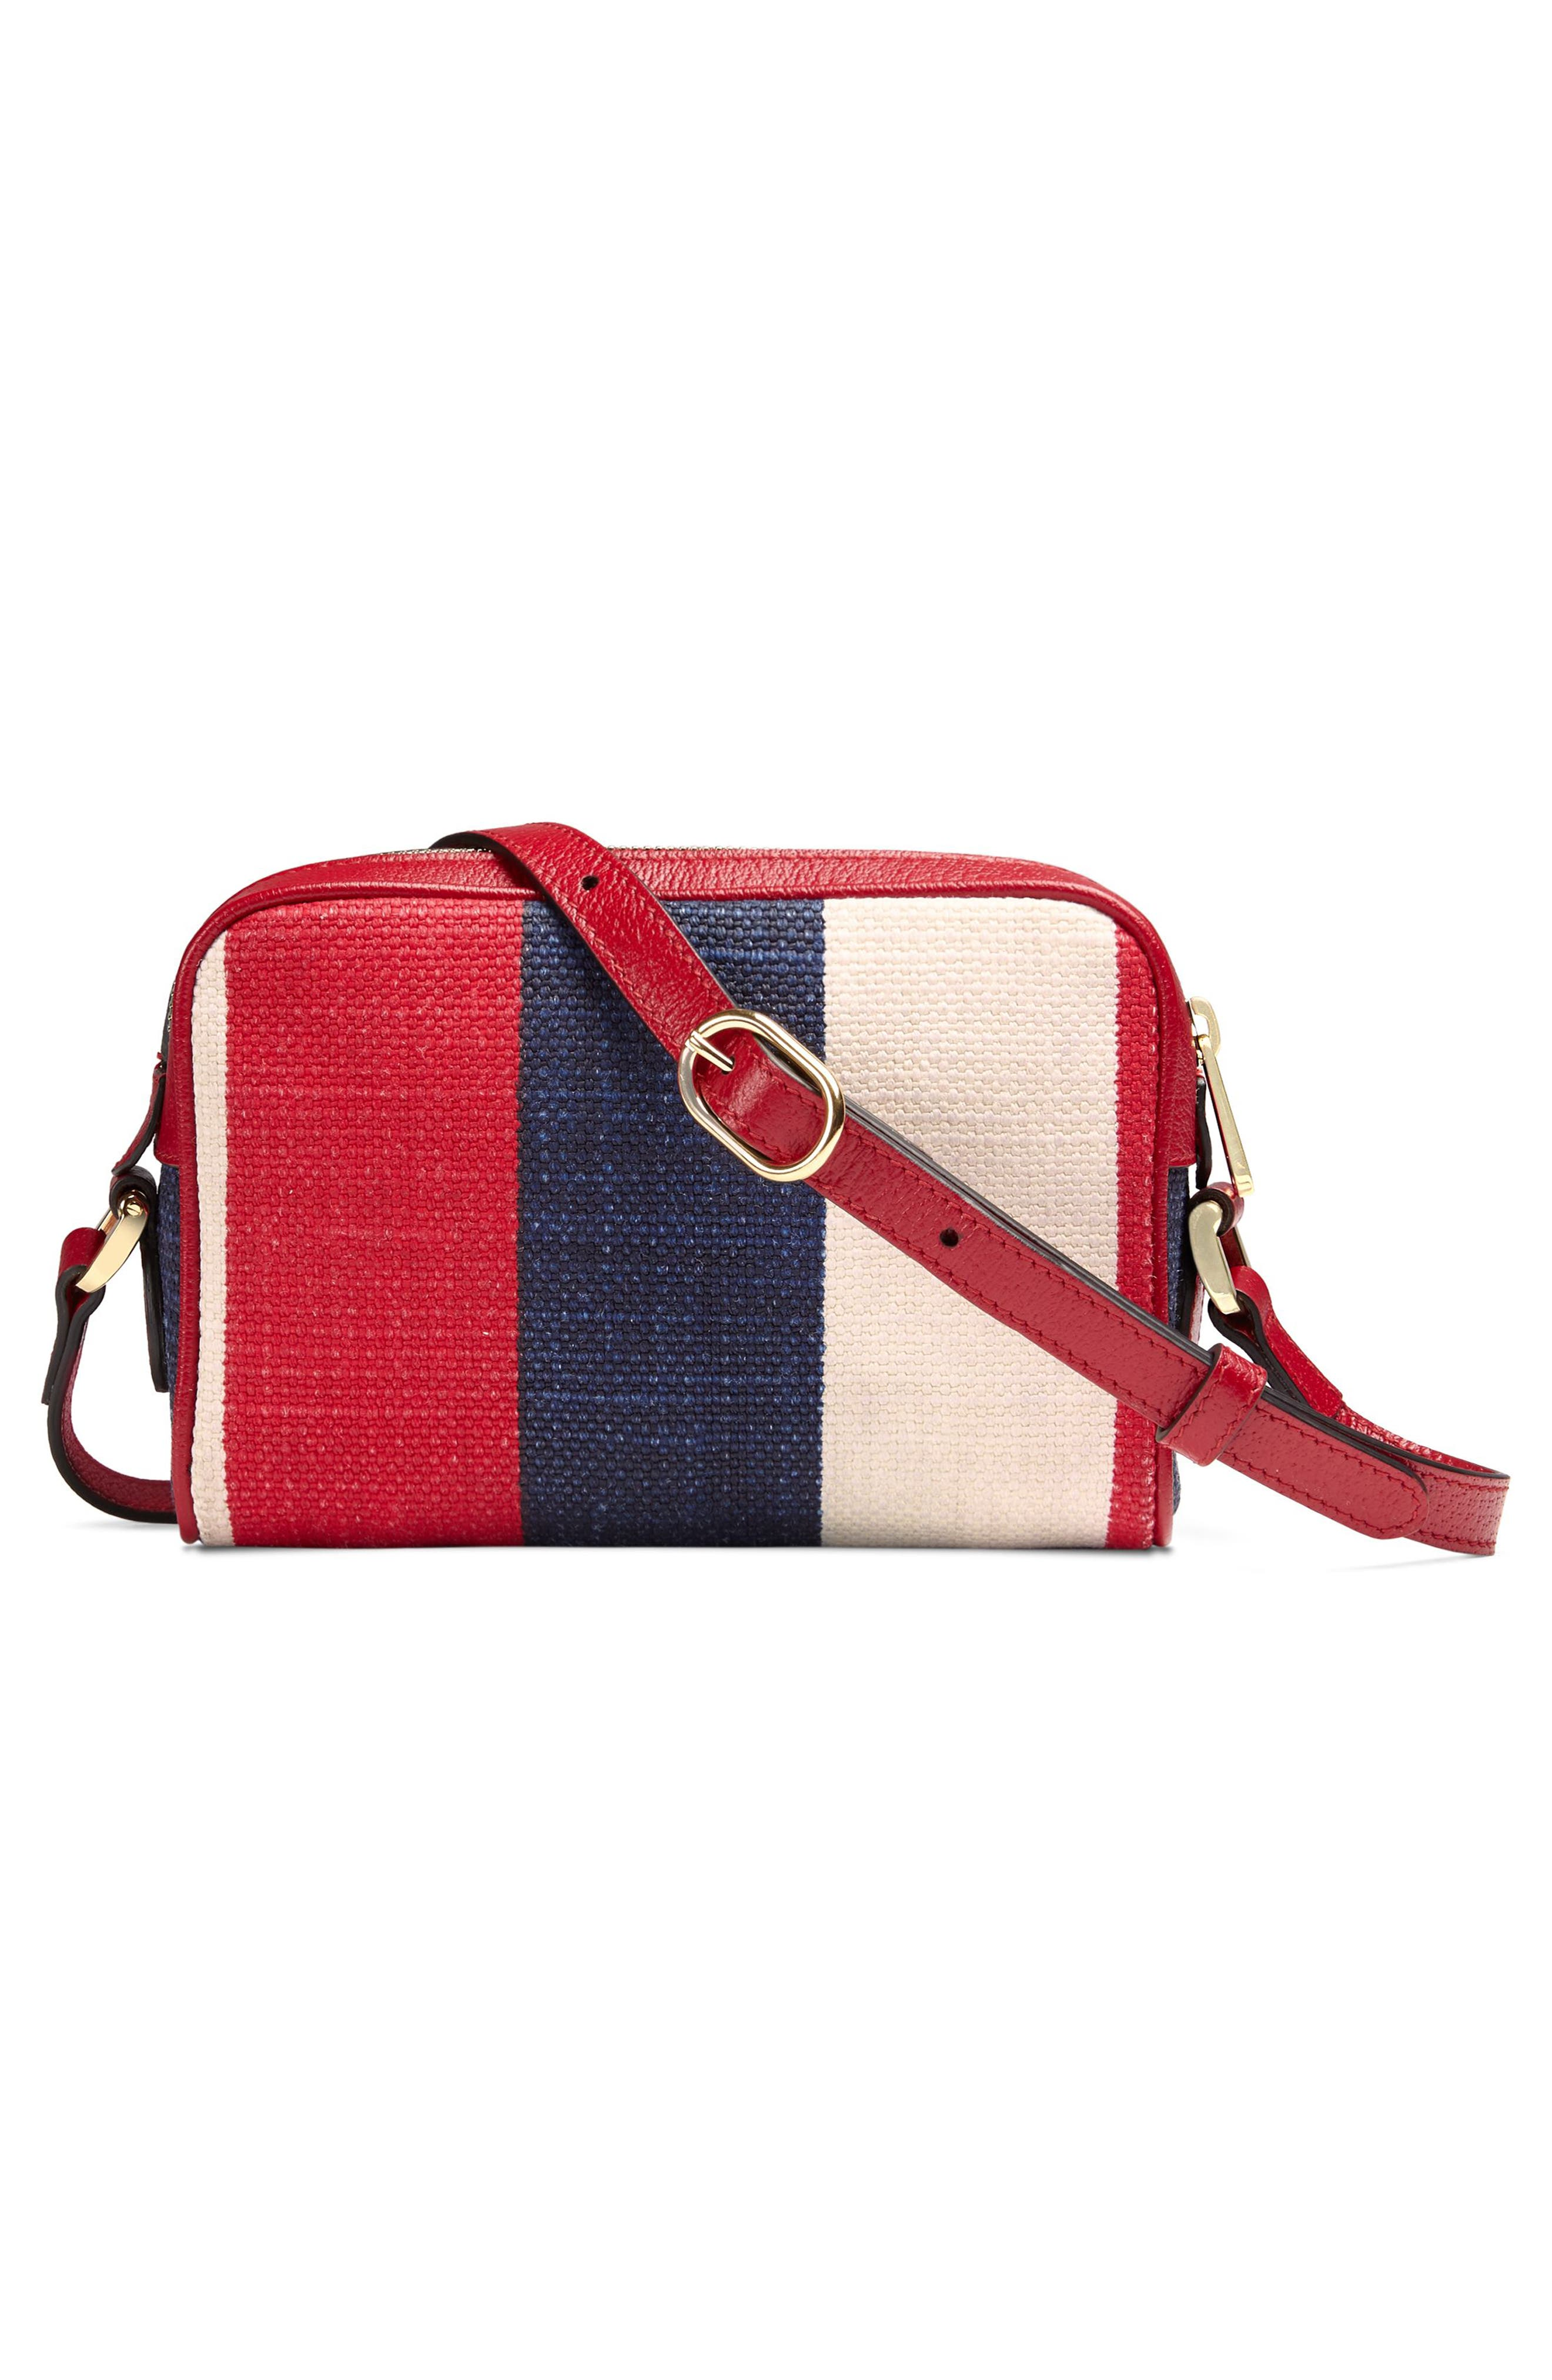 Ophidia Washed Cotton Stripe Mini Bag,                             Alternate thumbnail 2, color,                             Hibiscus Red/ White/ Blue